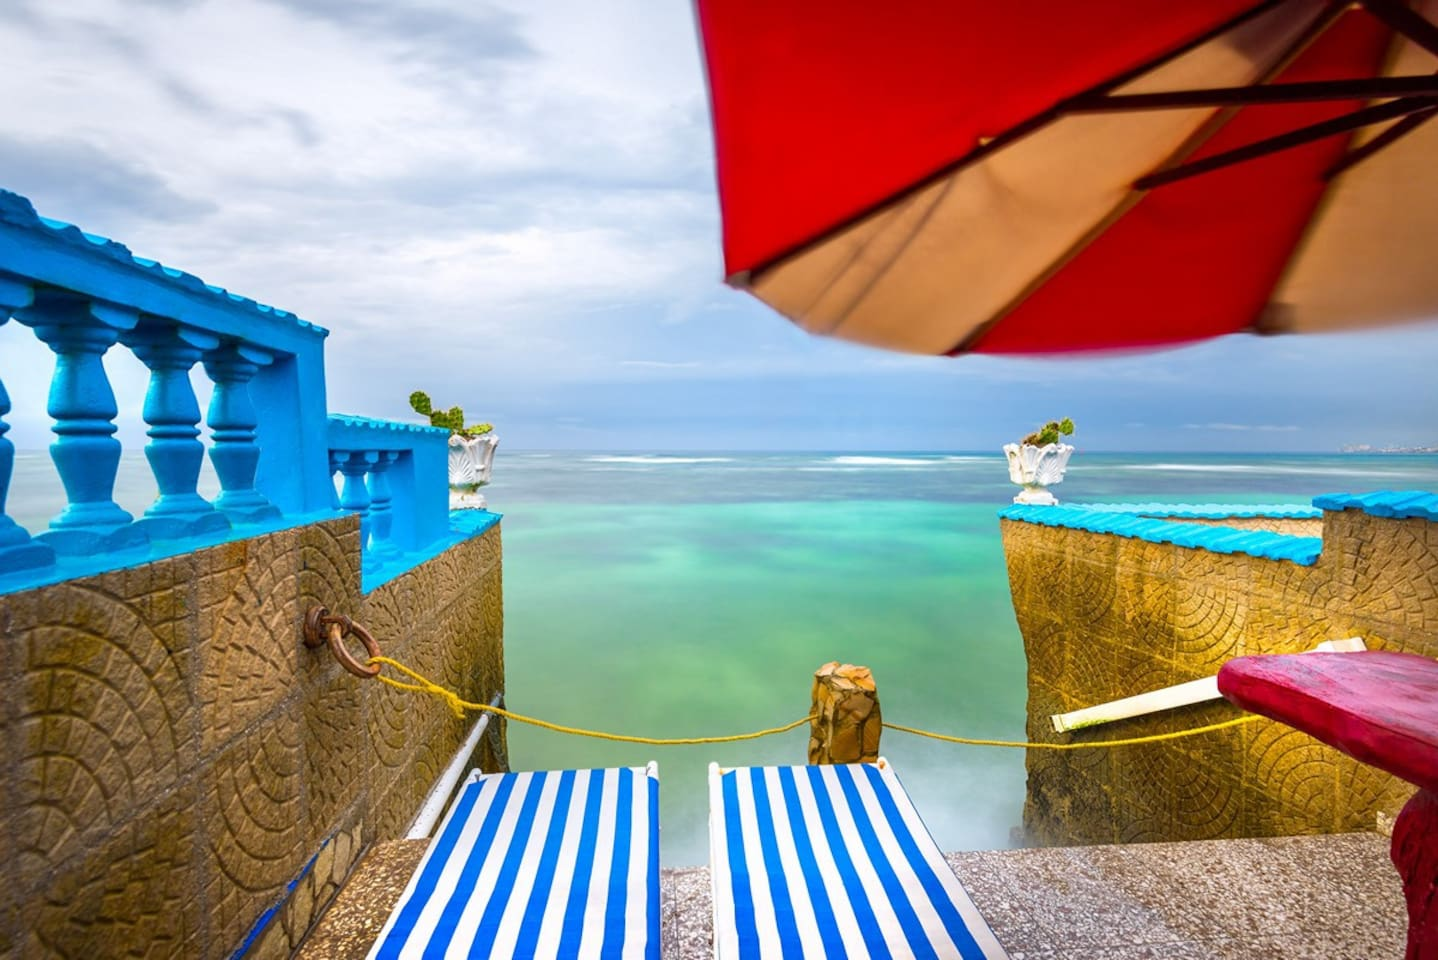 Enjoy a fantastic view of the sea or eat your snacks on the small table beside